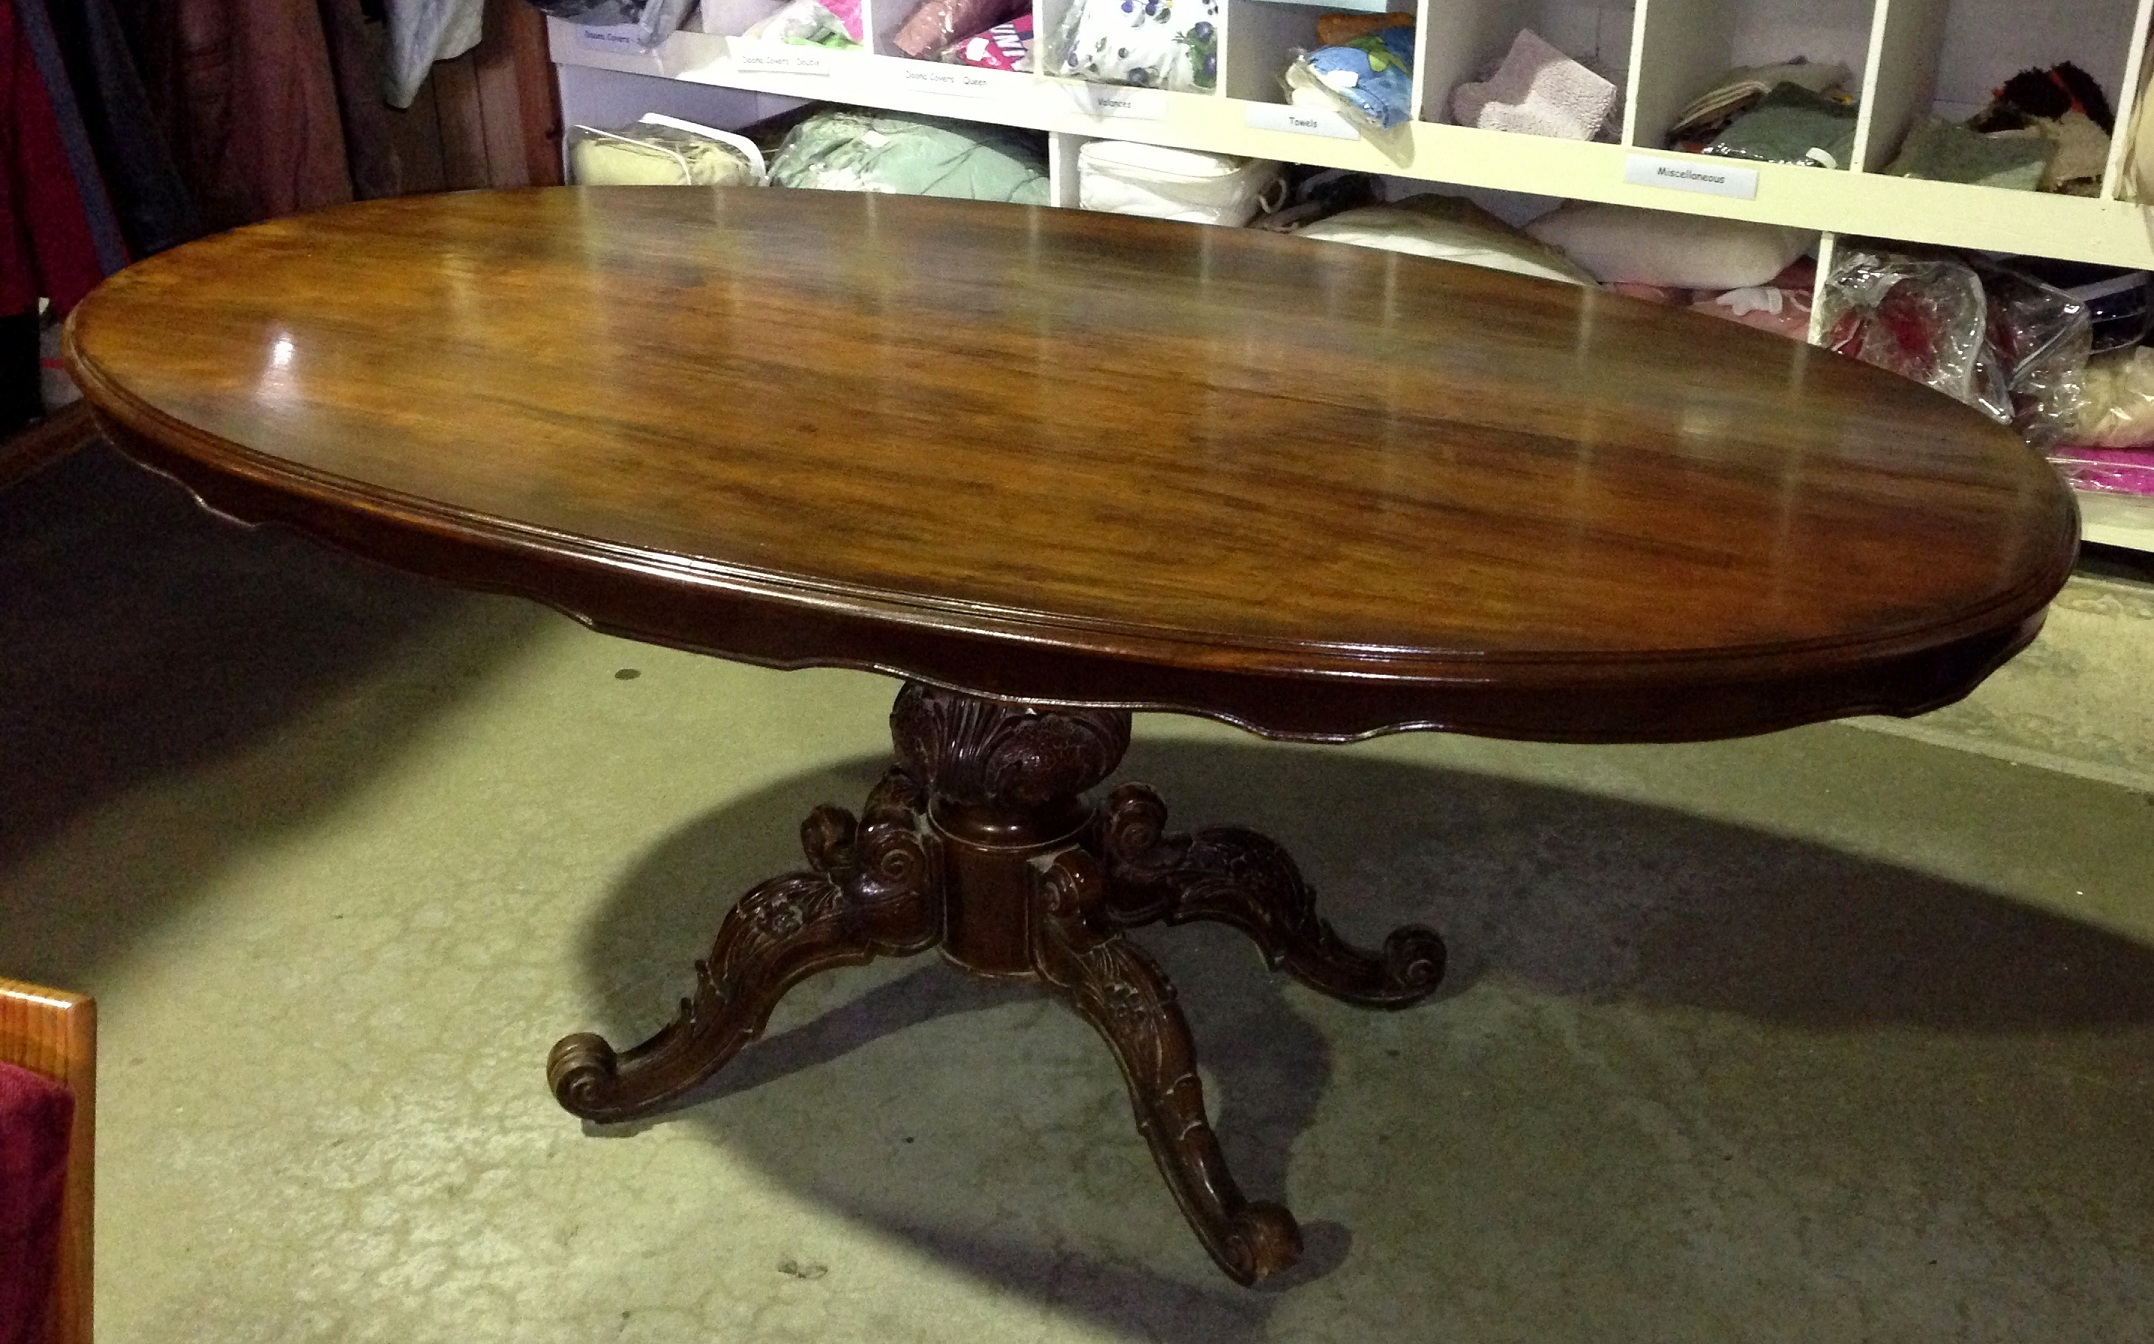 Antique Oval Table #34 - Oval Shaped Dining Table With Apron And Pedestal Base With Carved Legs And  Feet